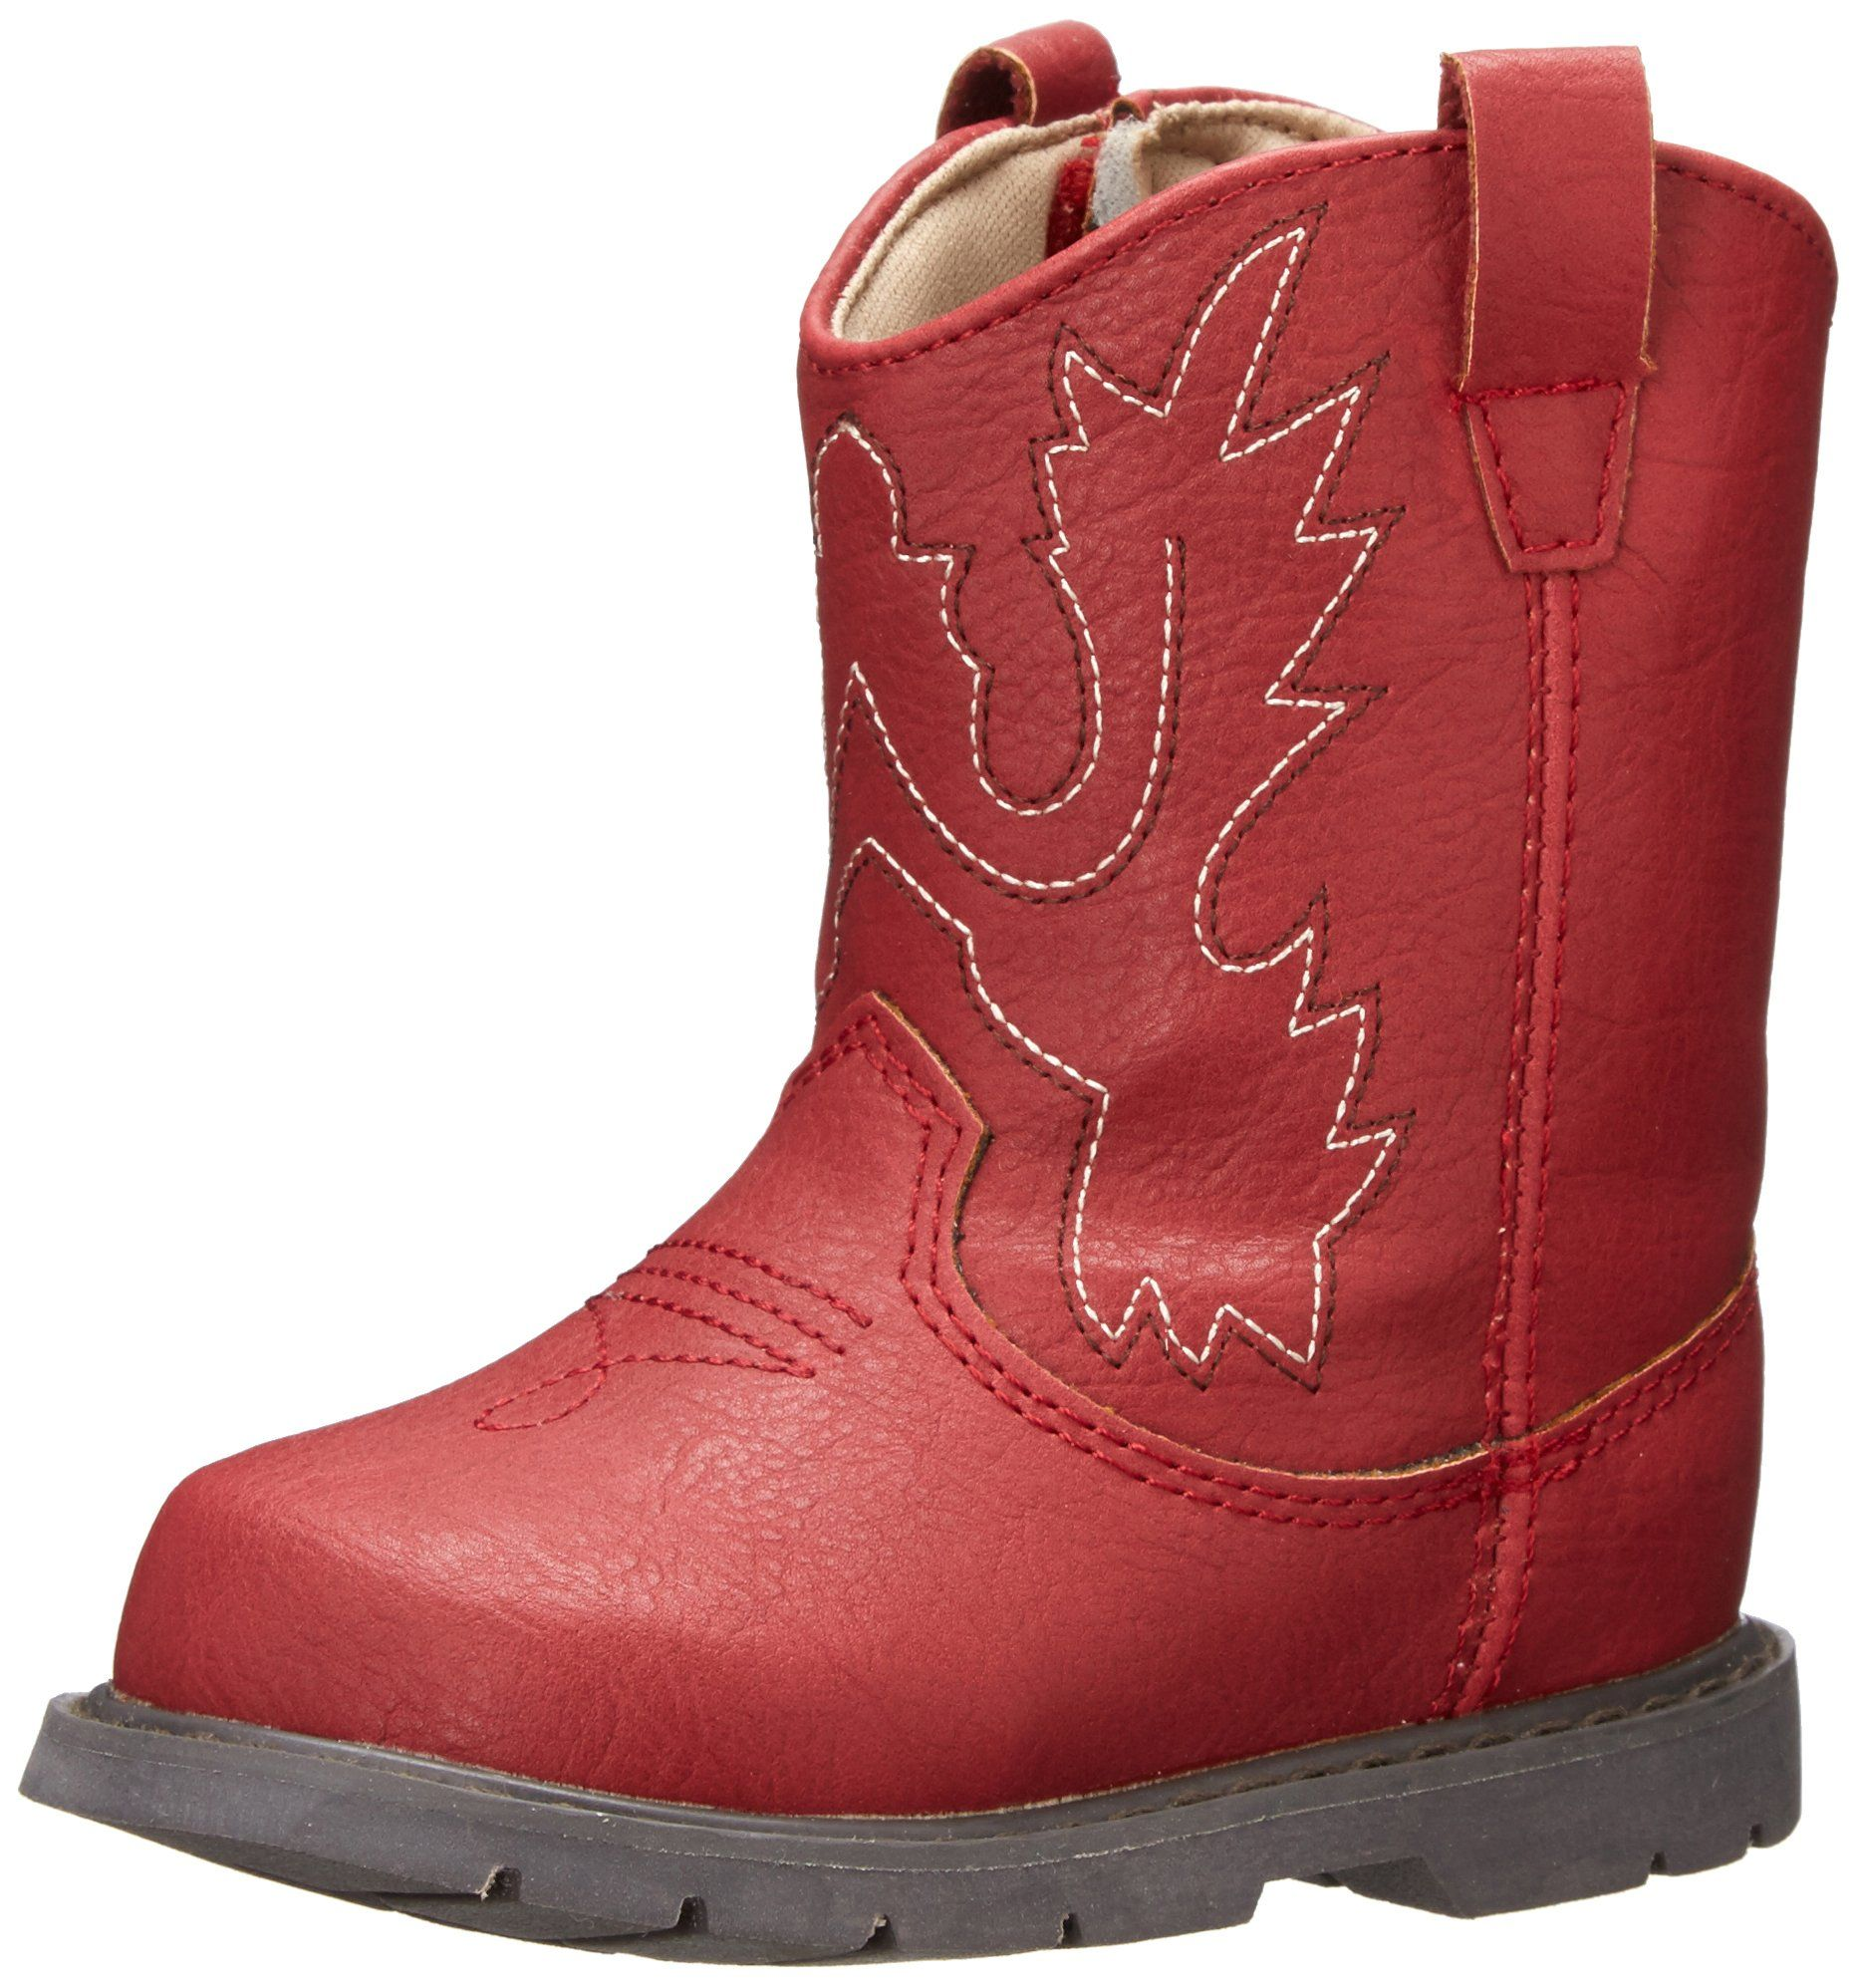 Baby Deer Western Boot Infant Toddler Red 6 M US Toddler